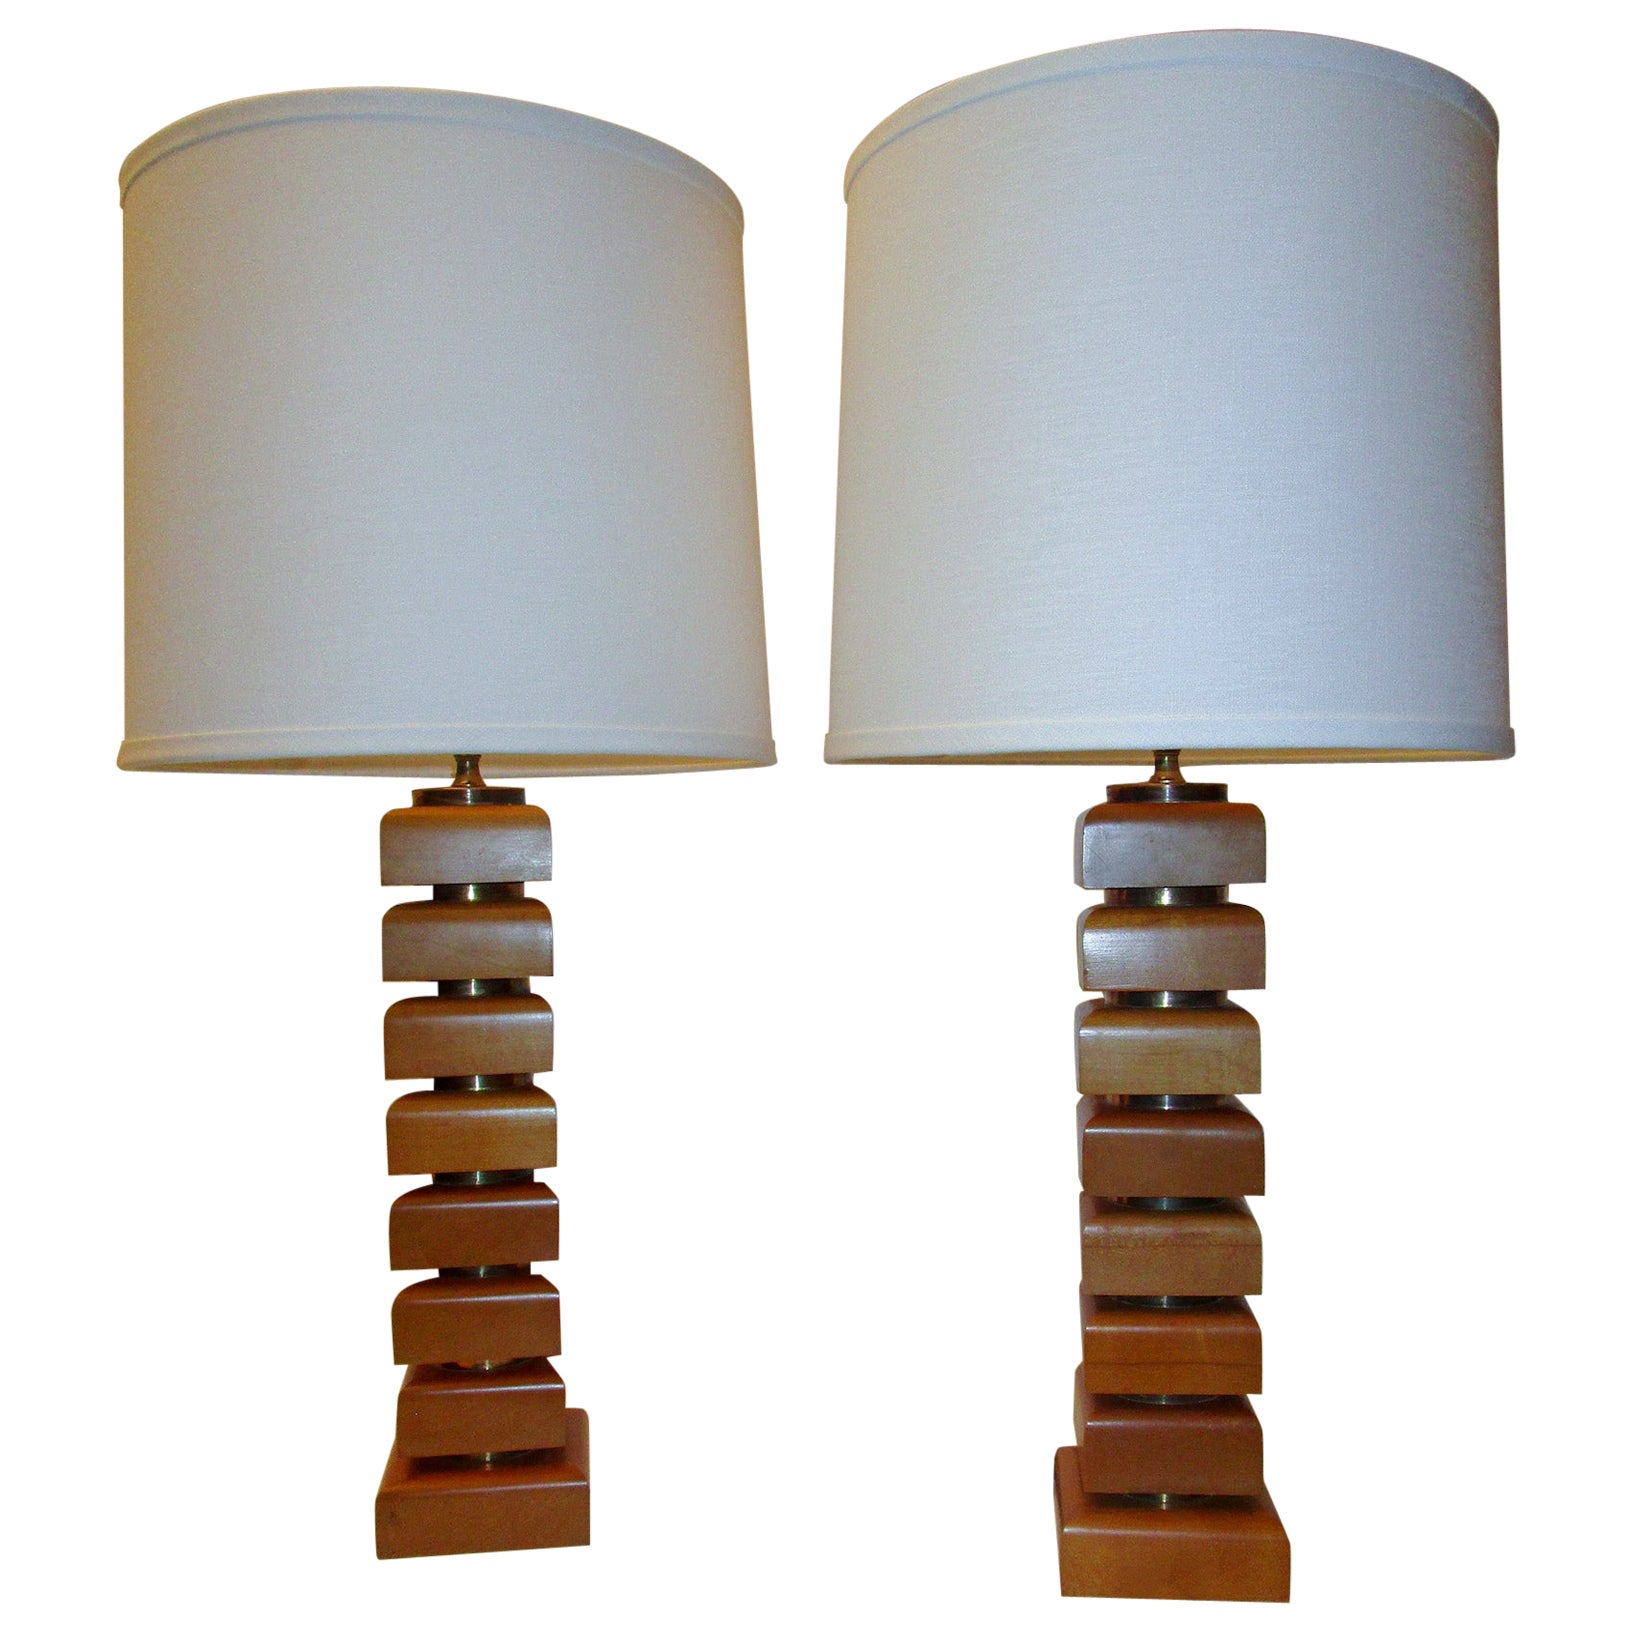 Pair of Mid-Century Modern Maple and Brass Table Lamps